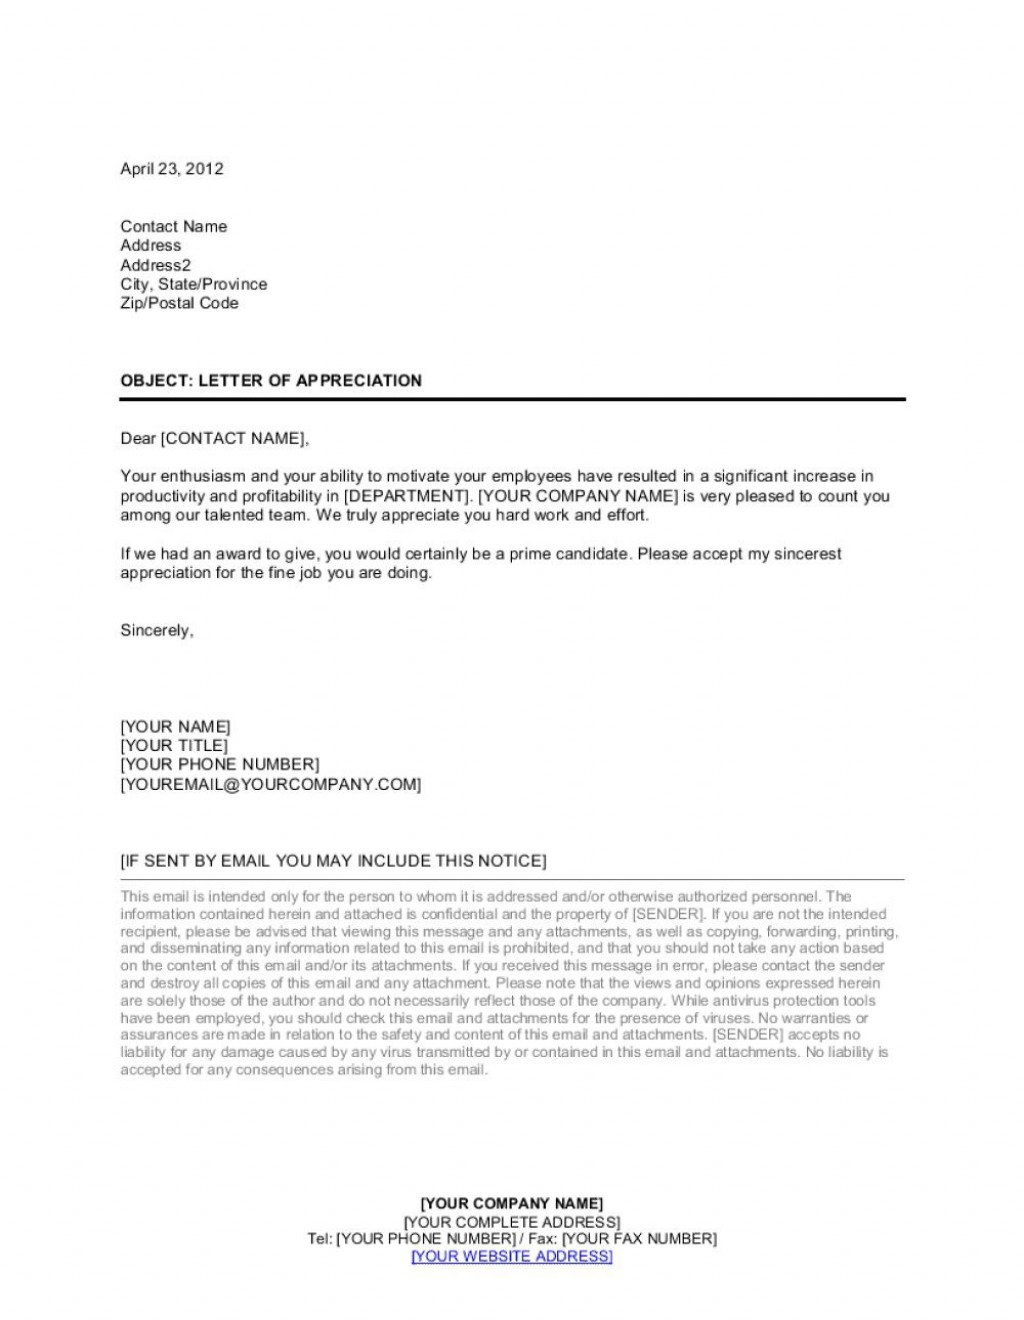 007 Surprising Letter Of Appreciation Template Inspiration  Example Employee Usmc Format For TheLarge